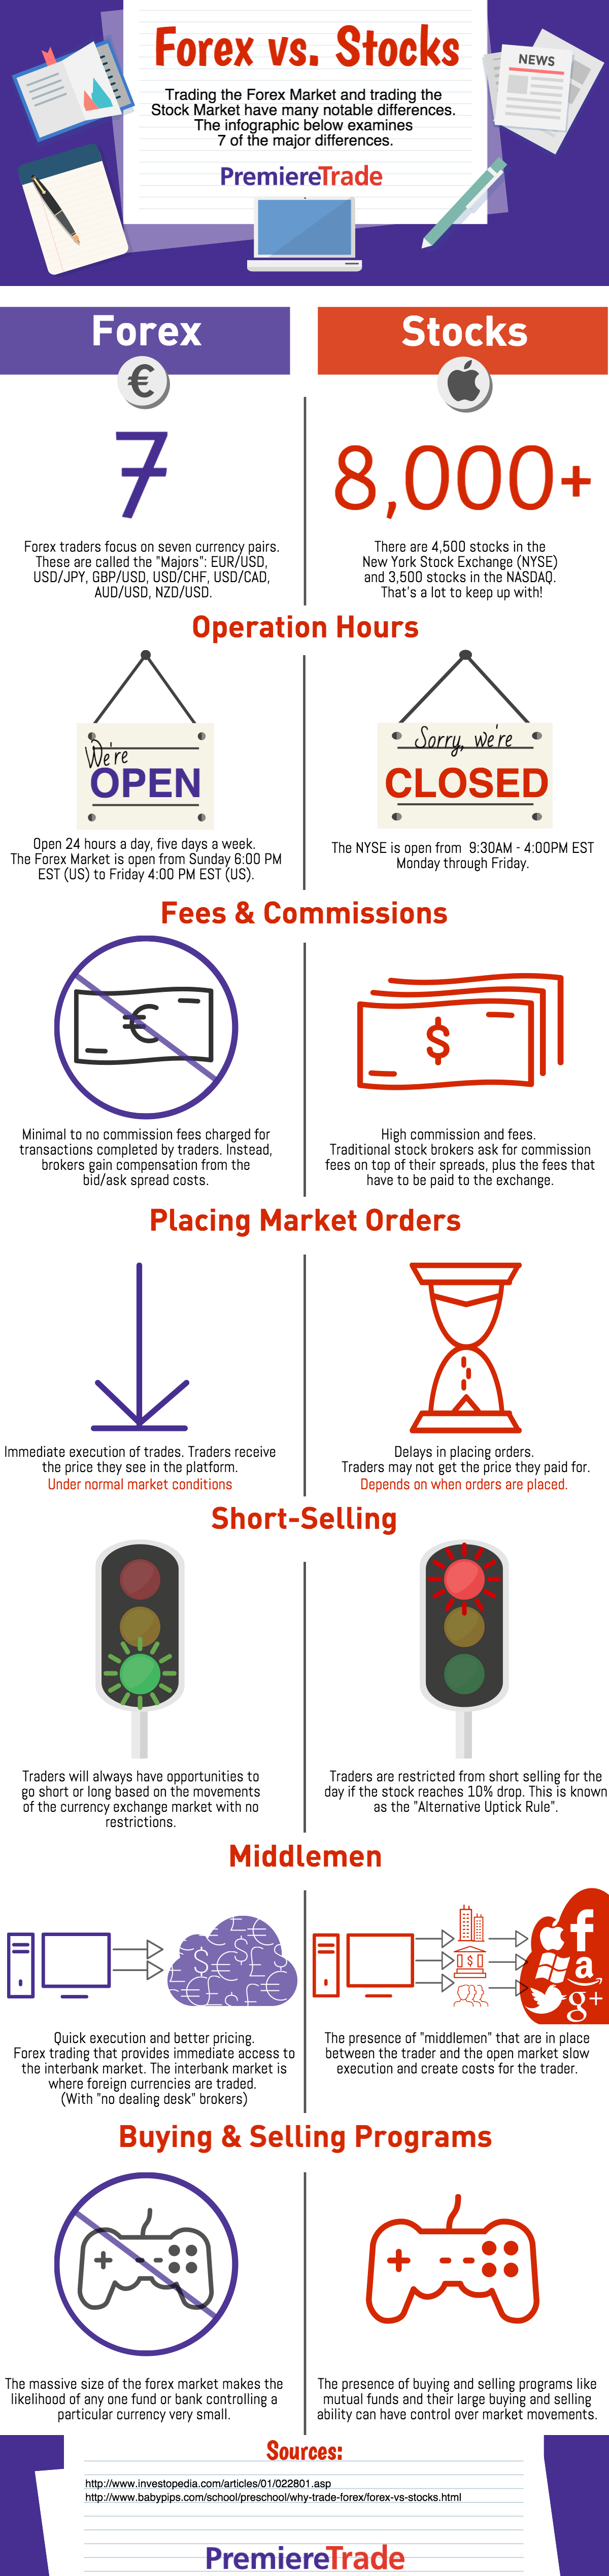 Forex stock trading training